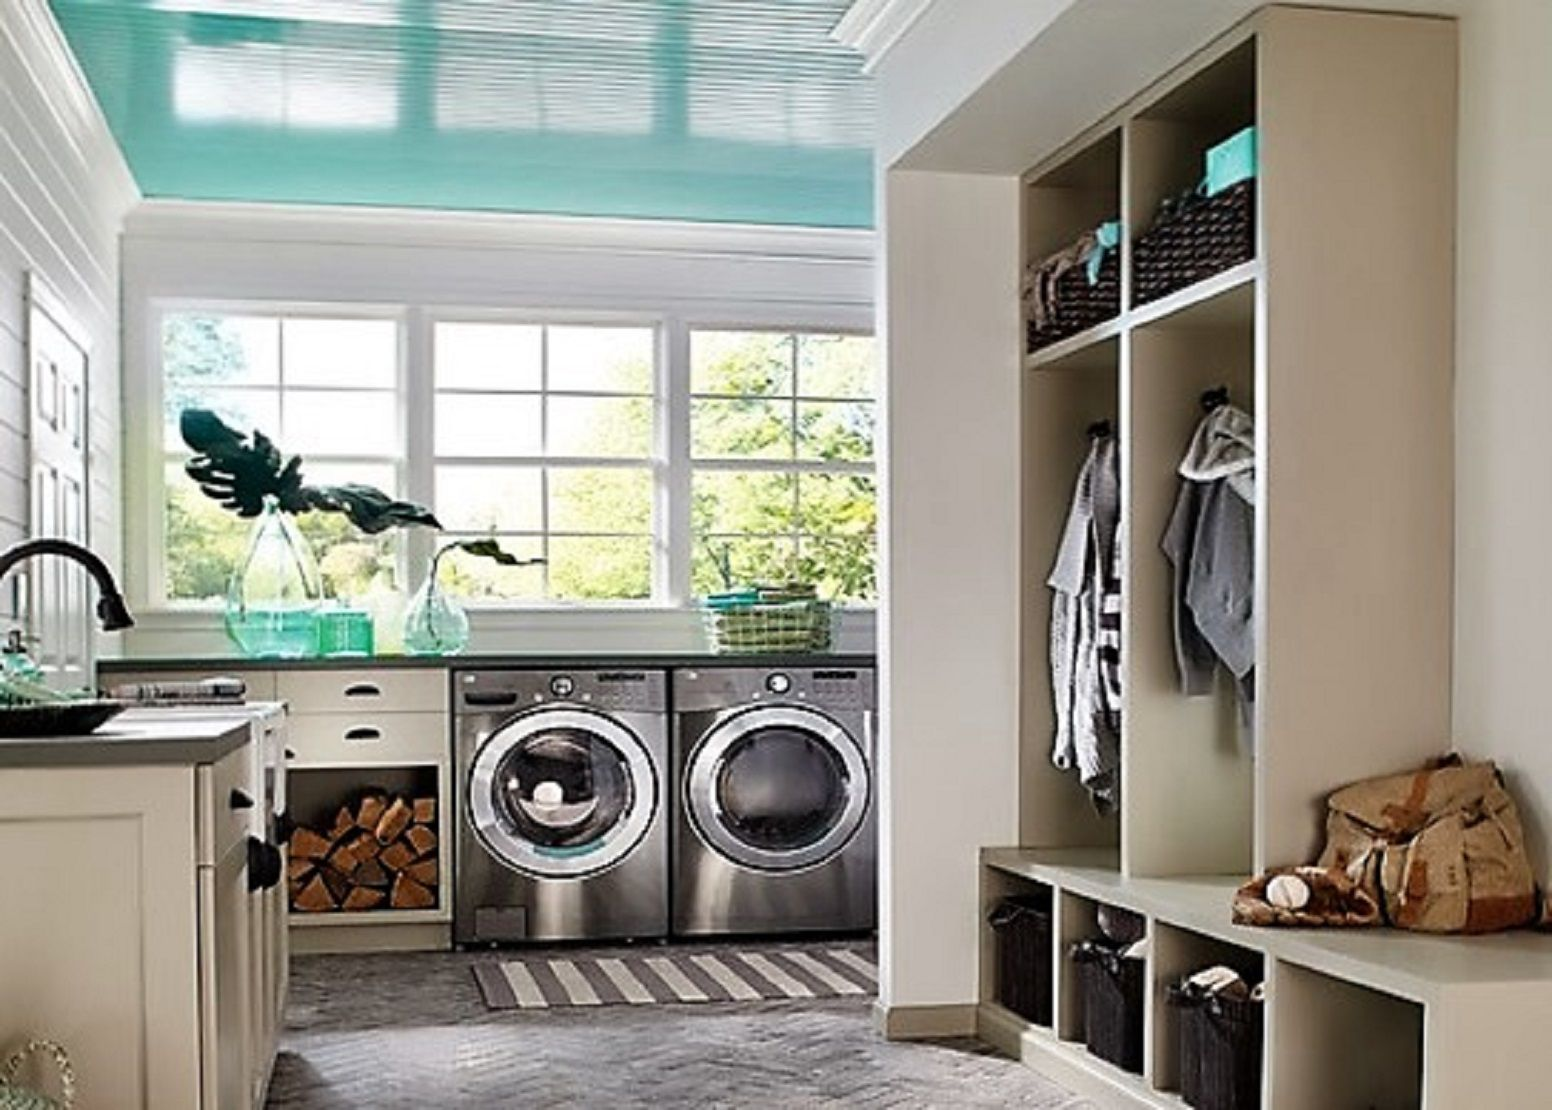 Design Laundry Room Images create feng shui in your laundry room